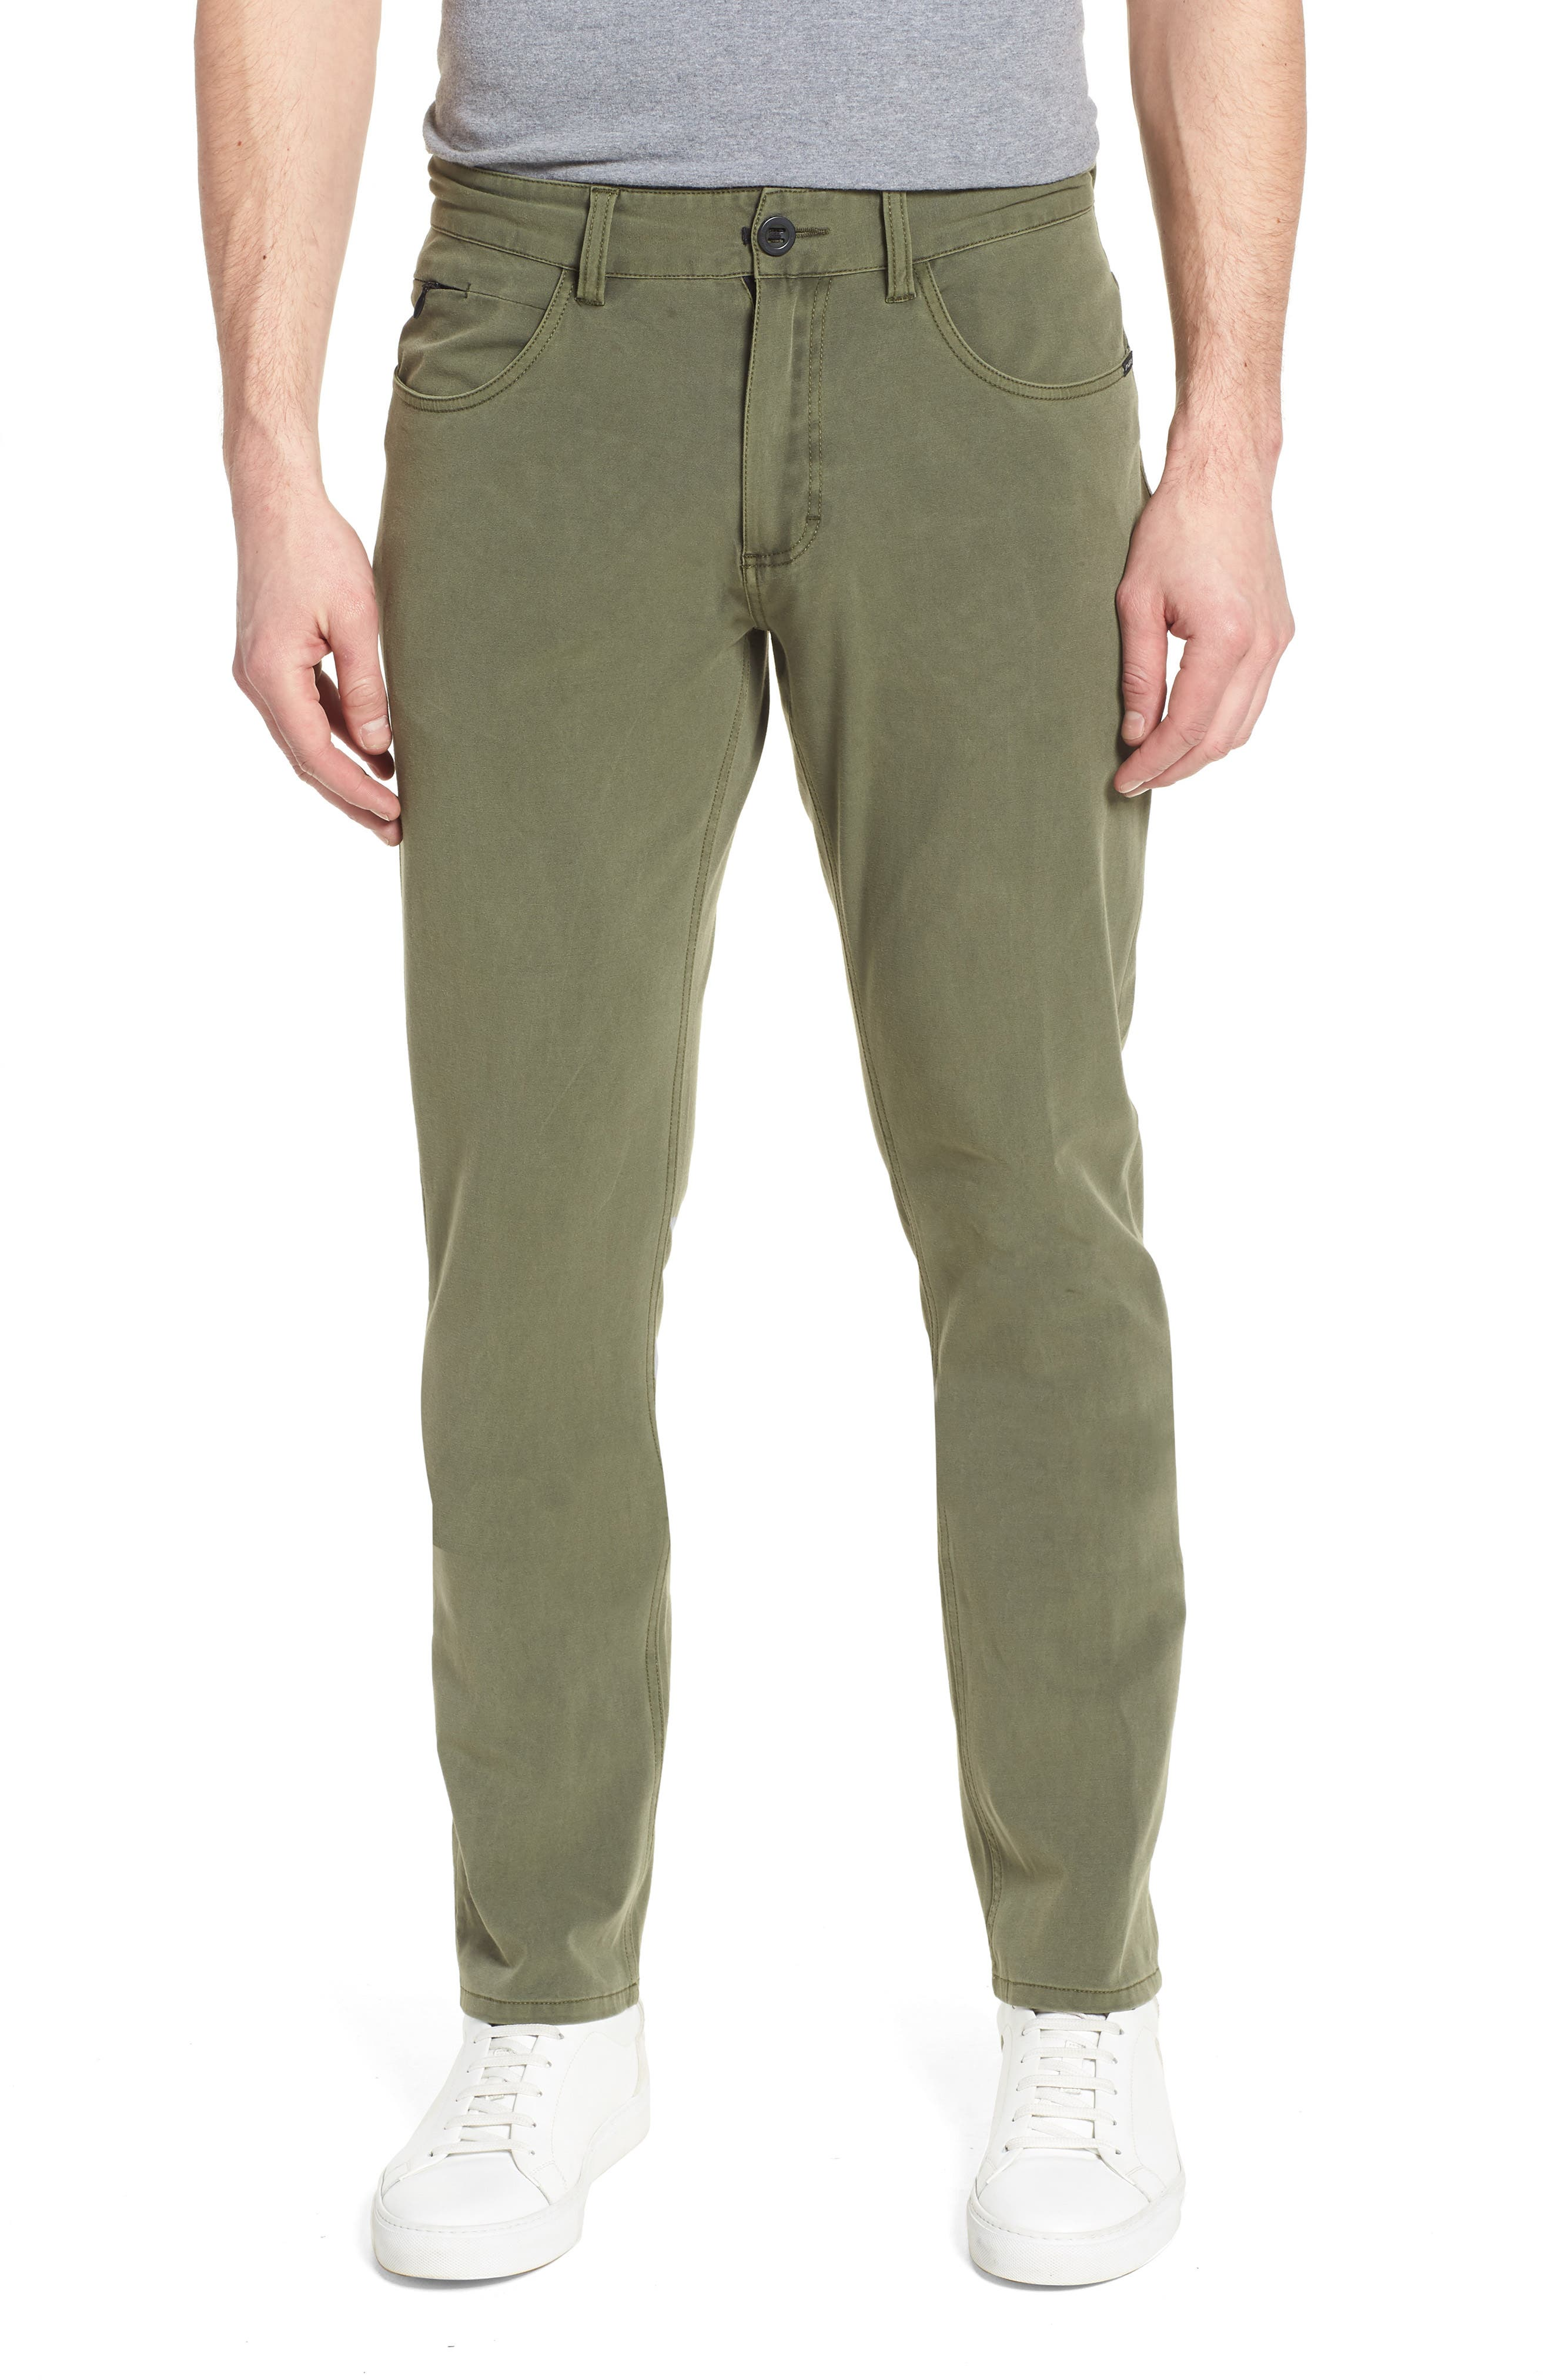 Venture Slim Fit Hybrid Pants,                         Main,                         color, Army